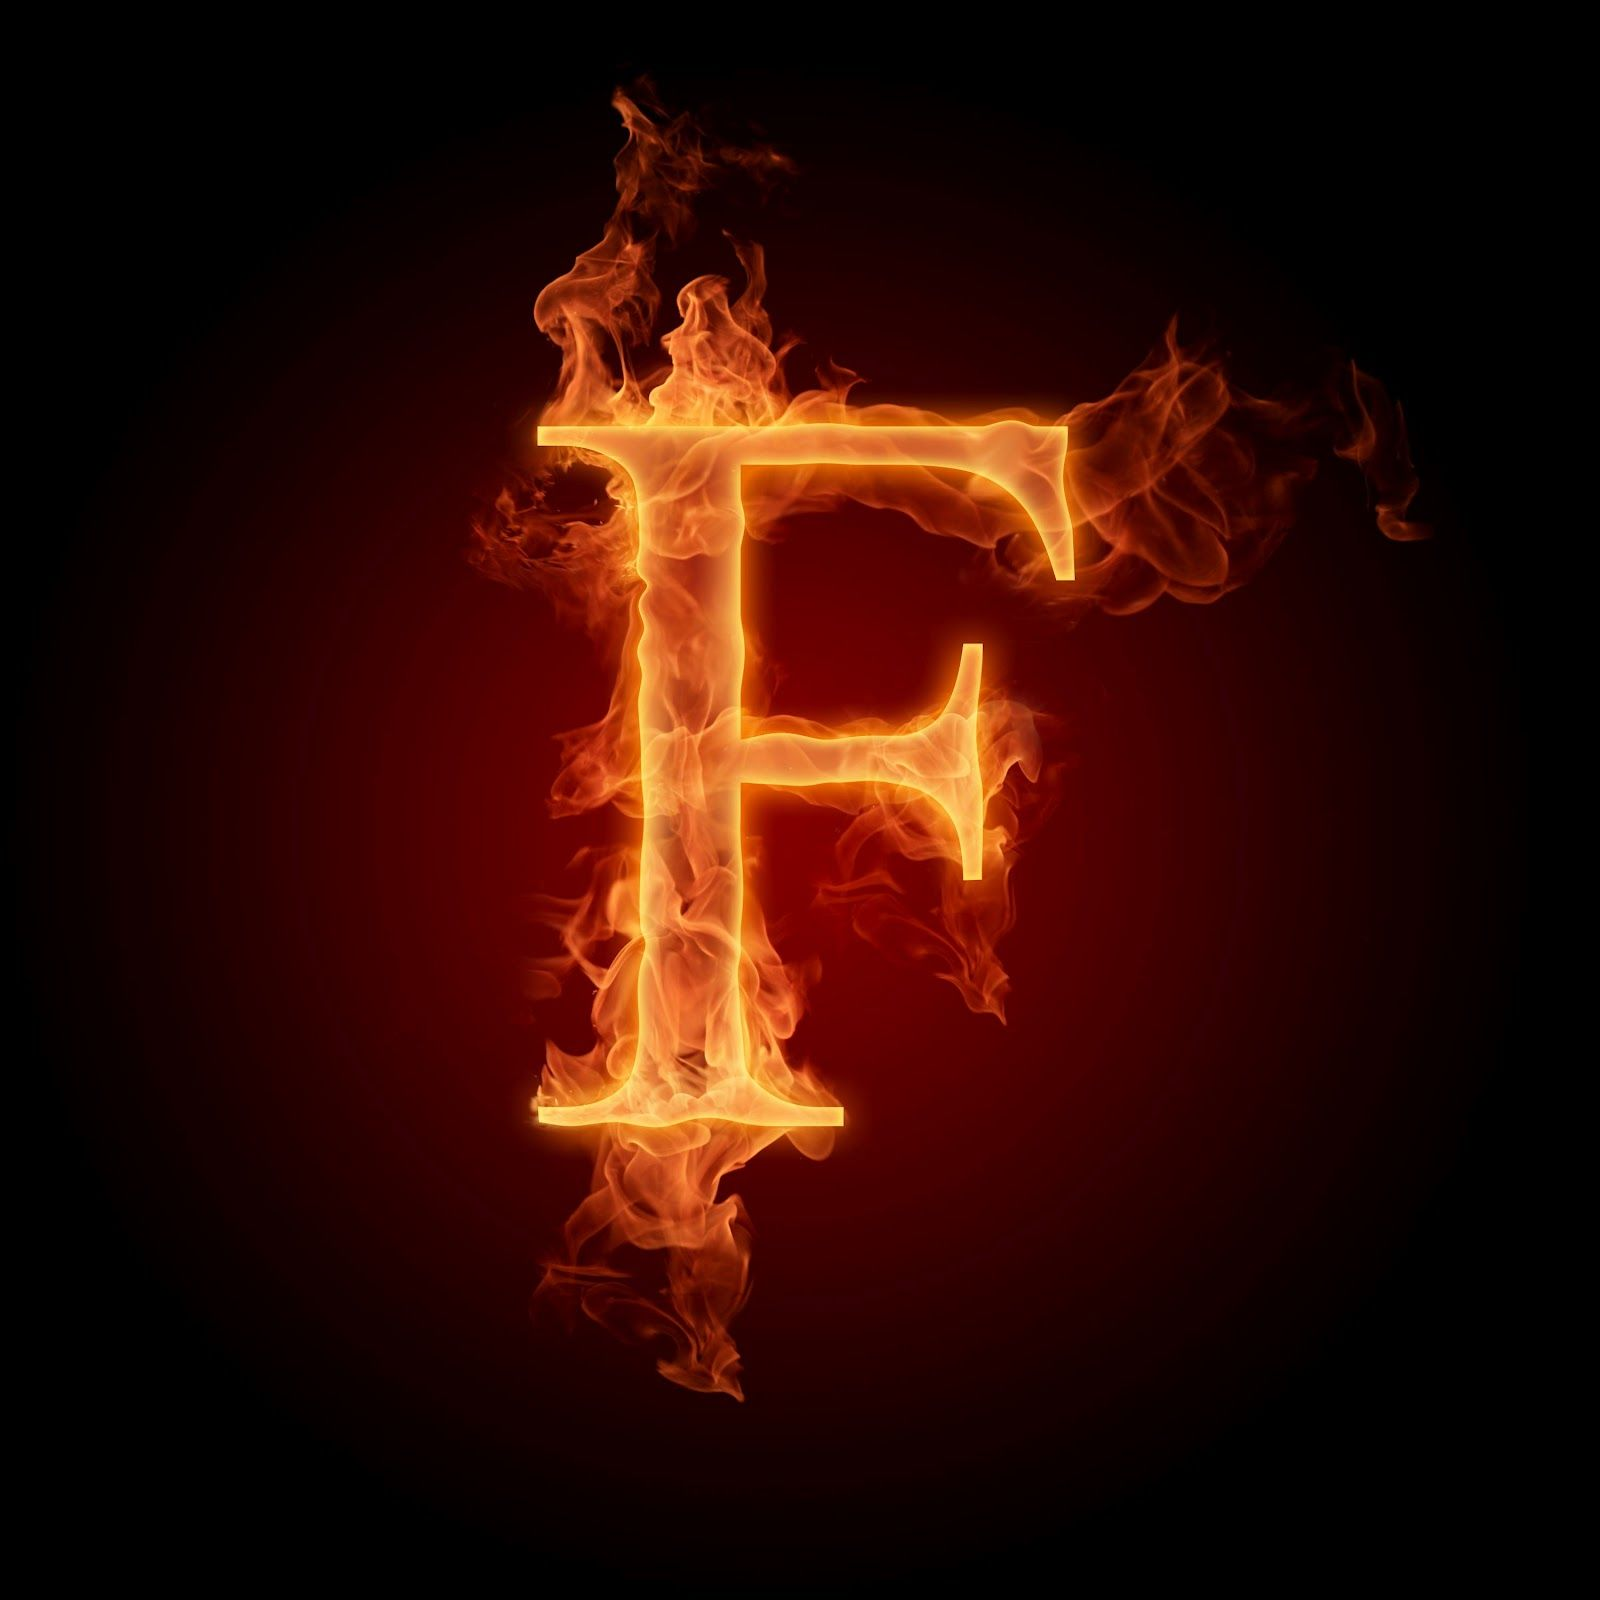 F Alphabet Hd Wallpaper Image Fire Font Name Wallpaper Alphabet Pictures